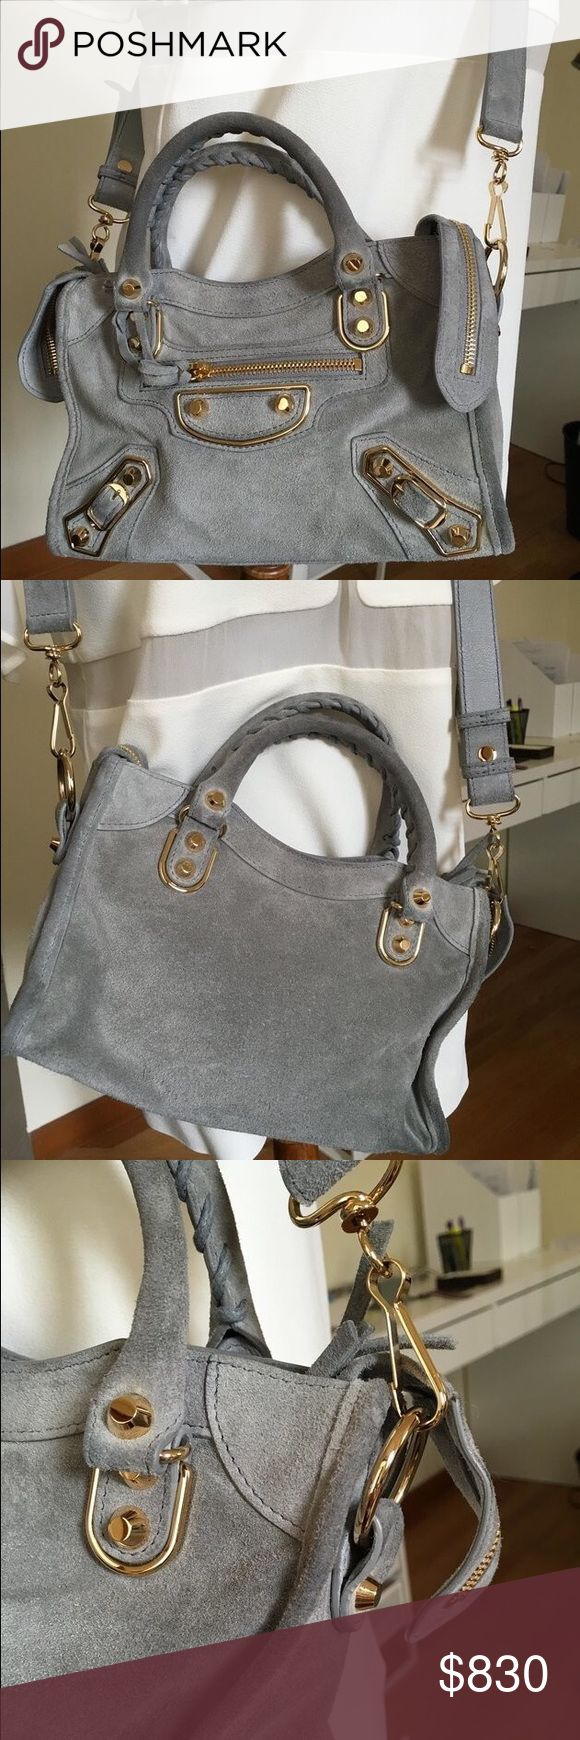 2016 Balenciaga Mini City in Gray Suede w/ Receipt Authentic Balenciaga suede mini city handbag from the Fall 2016 collection This model currently retails for $1455 at Bergdorf Goodman.  Lightly used- wear and tare on handles, corners and suede surface.  The packaging will include the original dust bag, tags and Barney's packing slip, gift box and ribbon. Price is lower if we trade offline.   Please feel free to message me if you have any questions! :) Balenciaga Bags Crossbody Bags